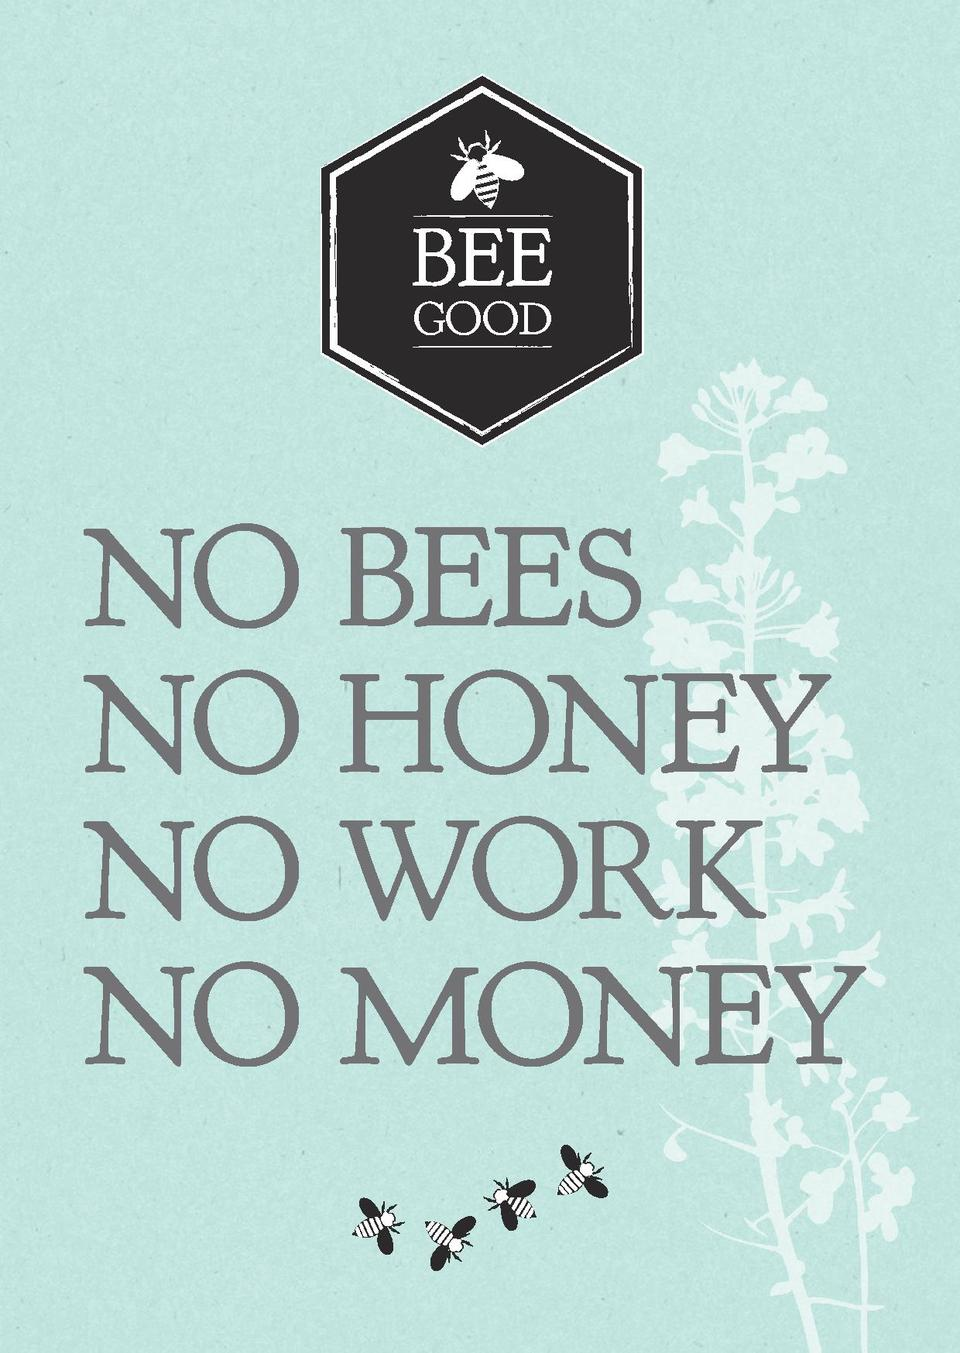 BEE GOOD  NO BEES NO HONEY NO WORK NO MONEY BeeGood_4ppA5Lft_v2.indd 1  BEE GOOD  29 05 2014 13 04